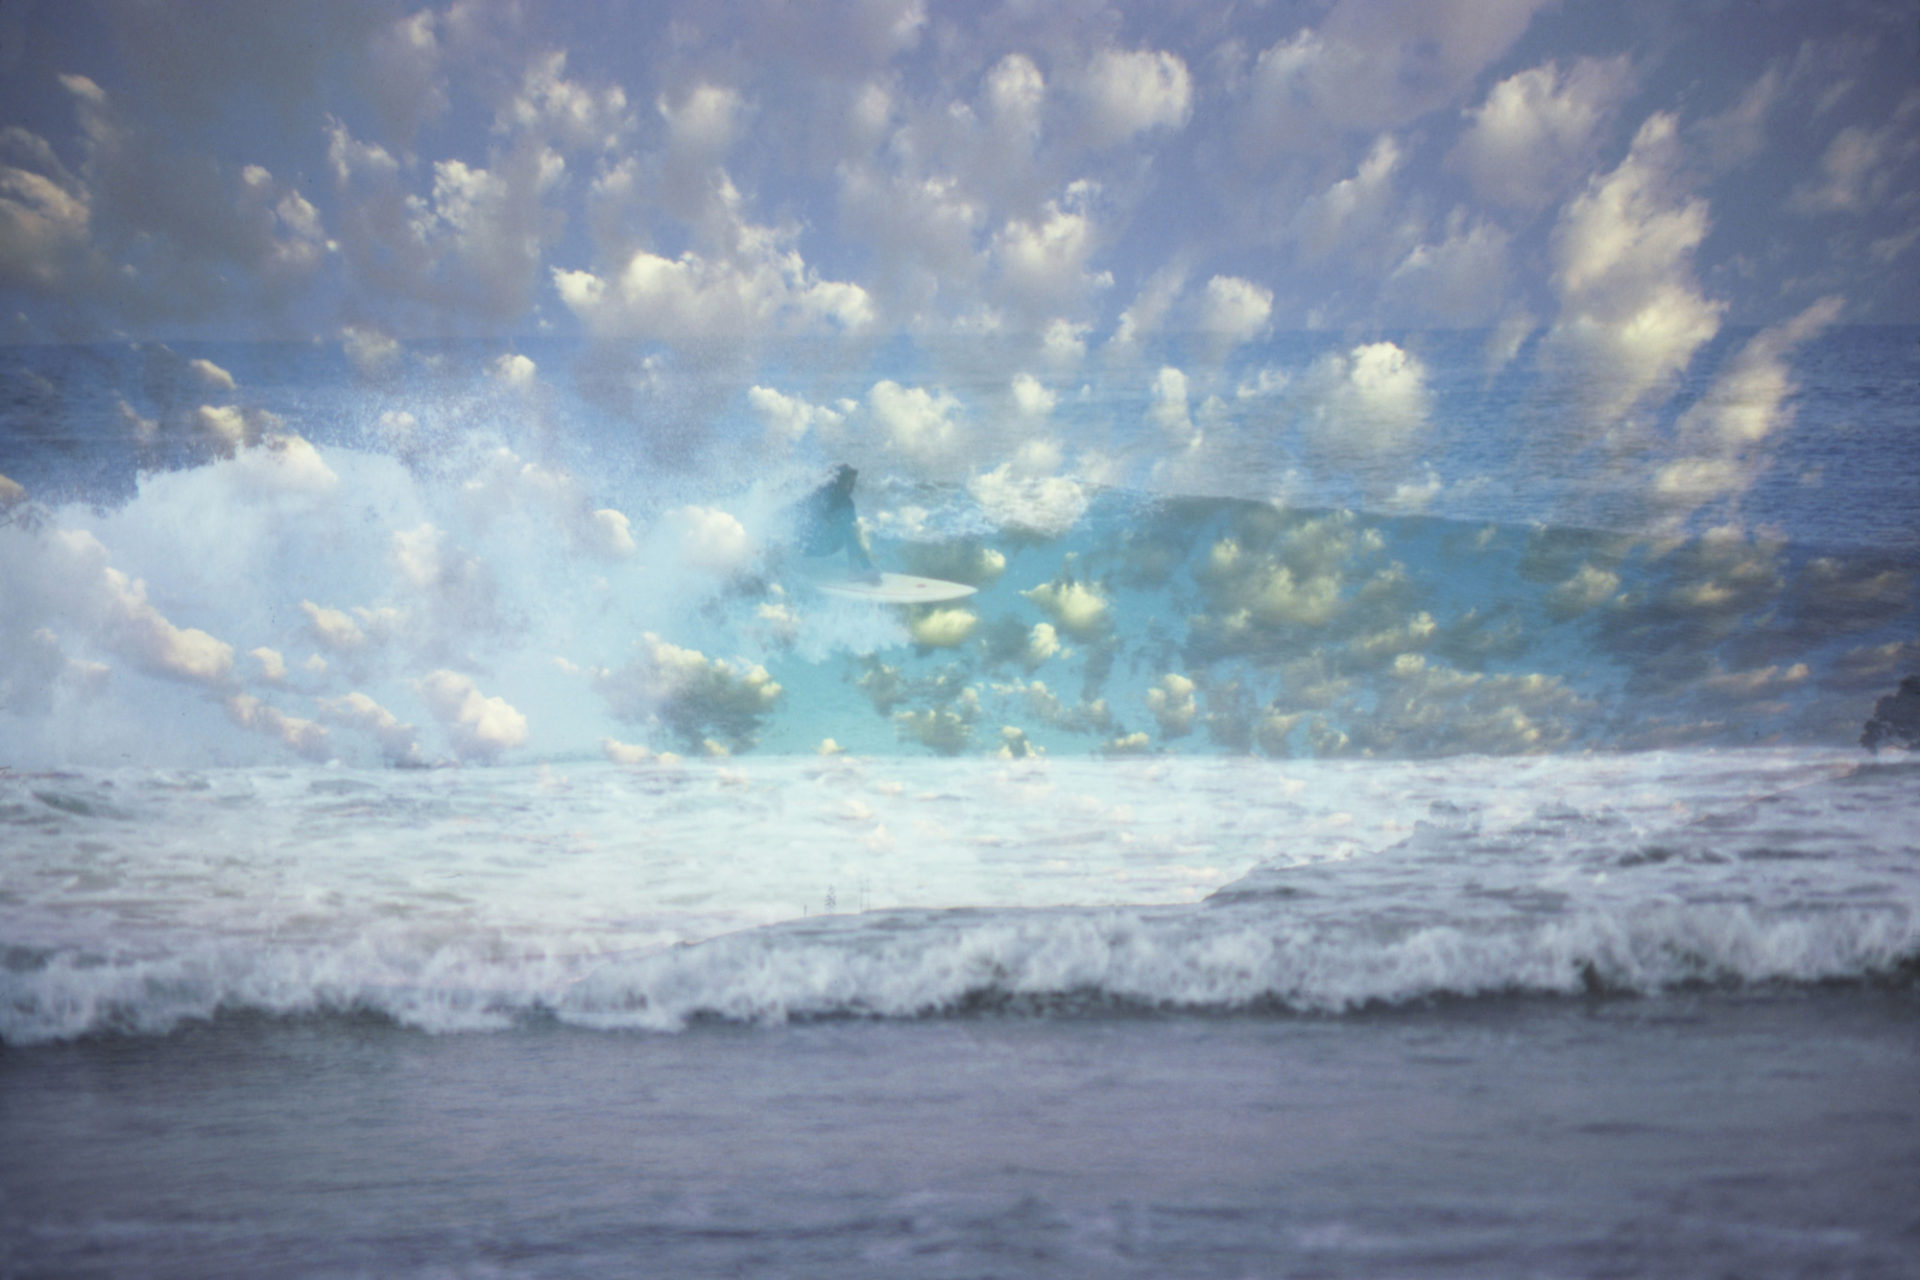 Surfer in clouds, Ronnie Jay